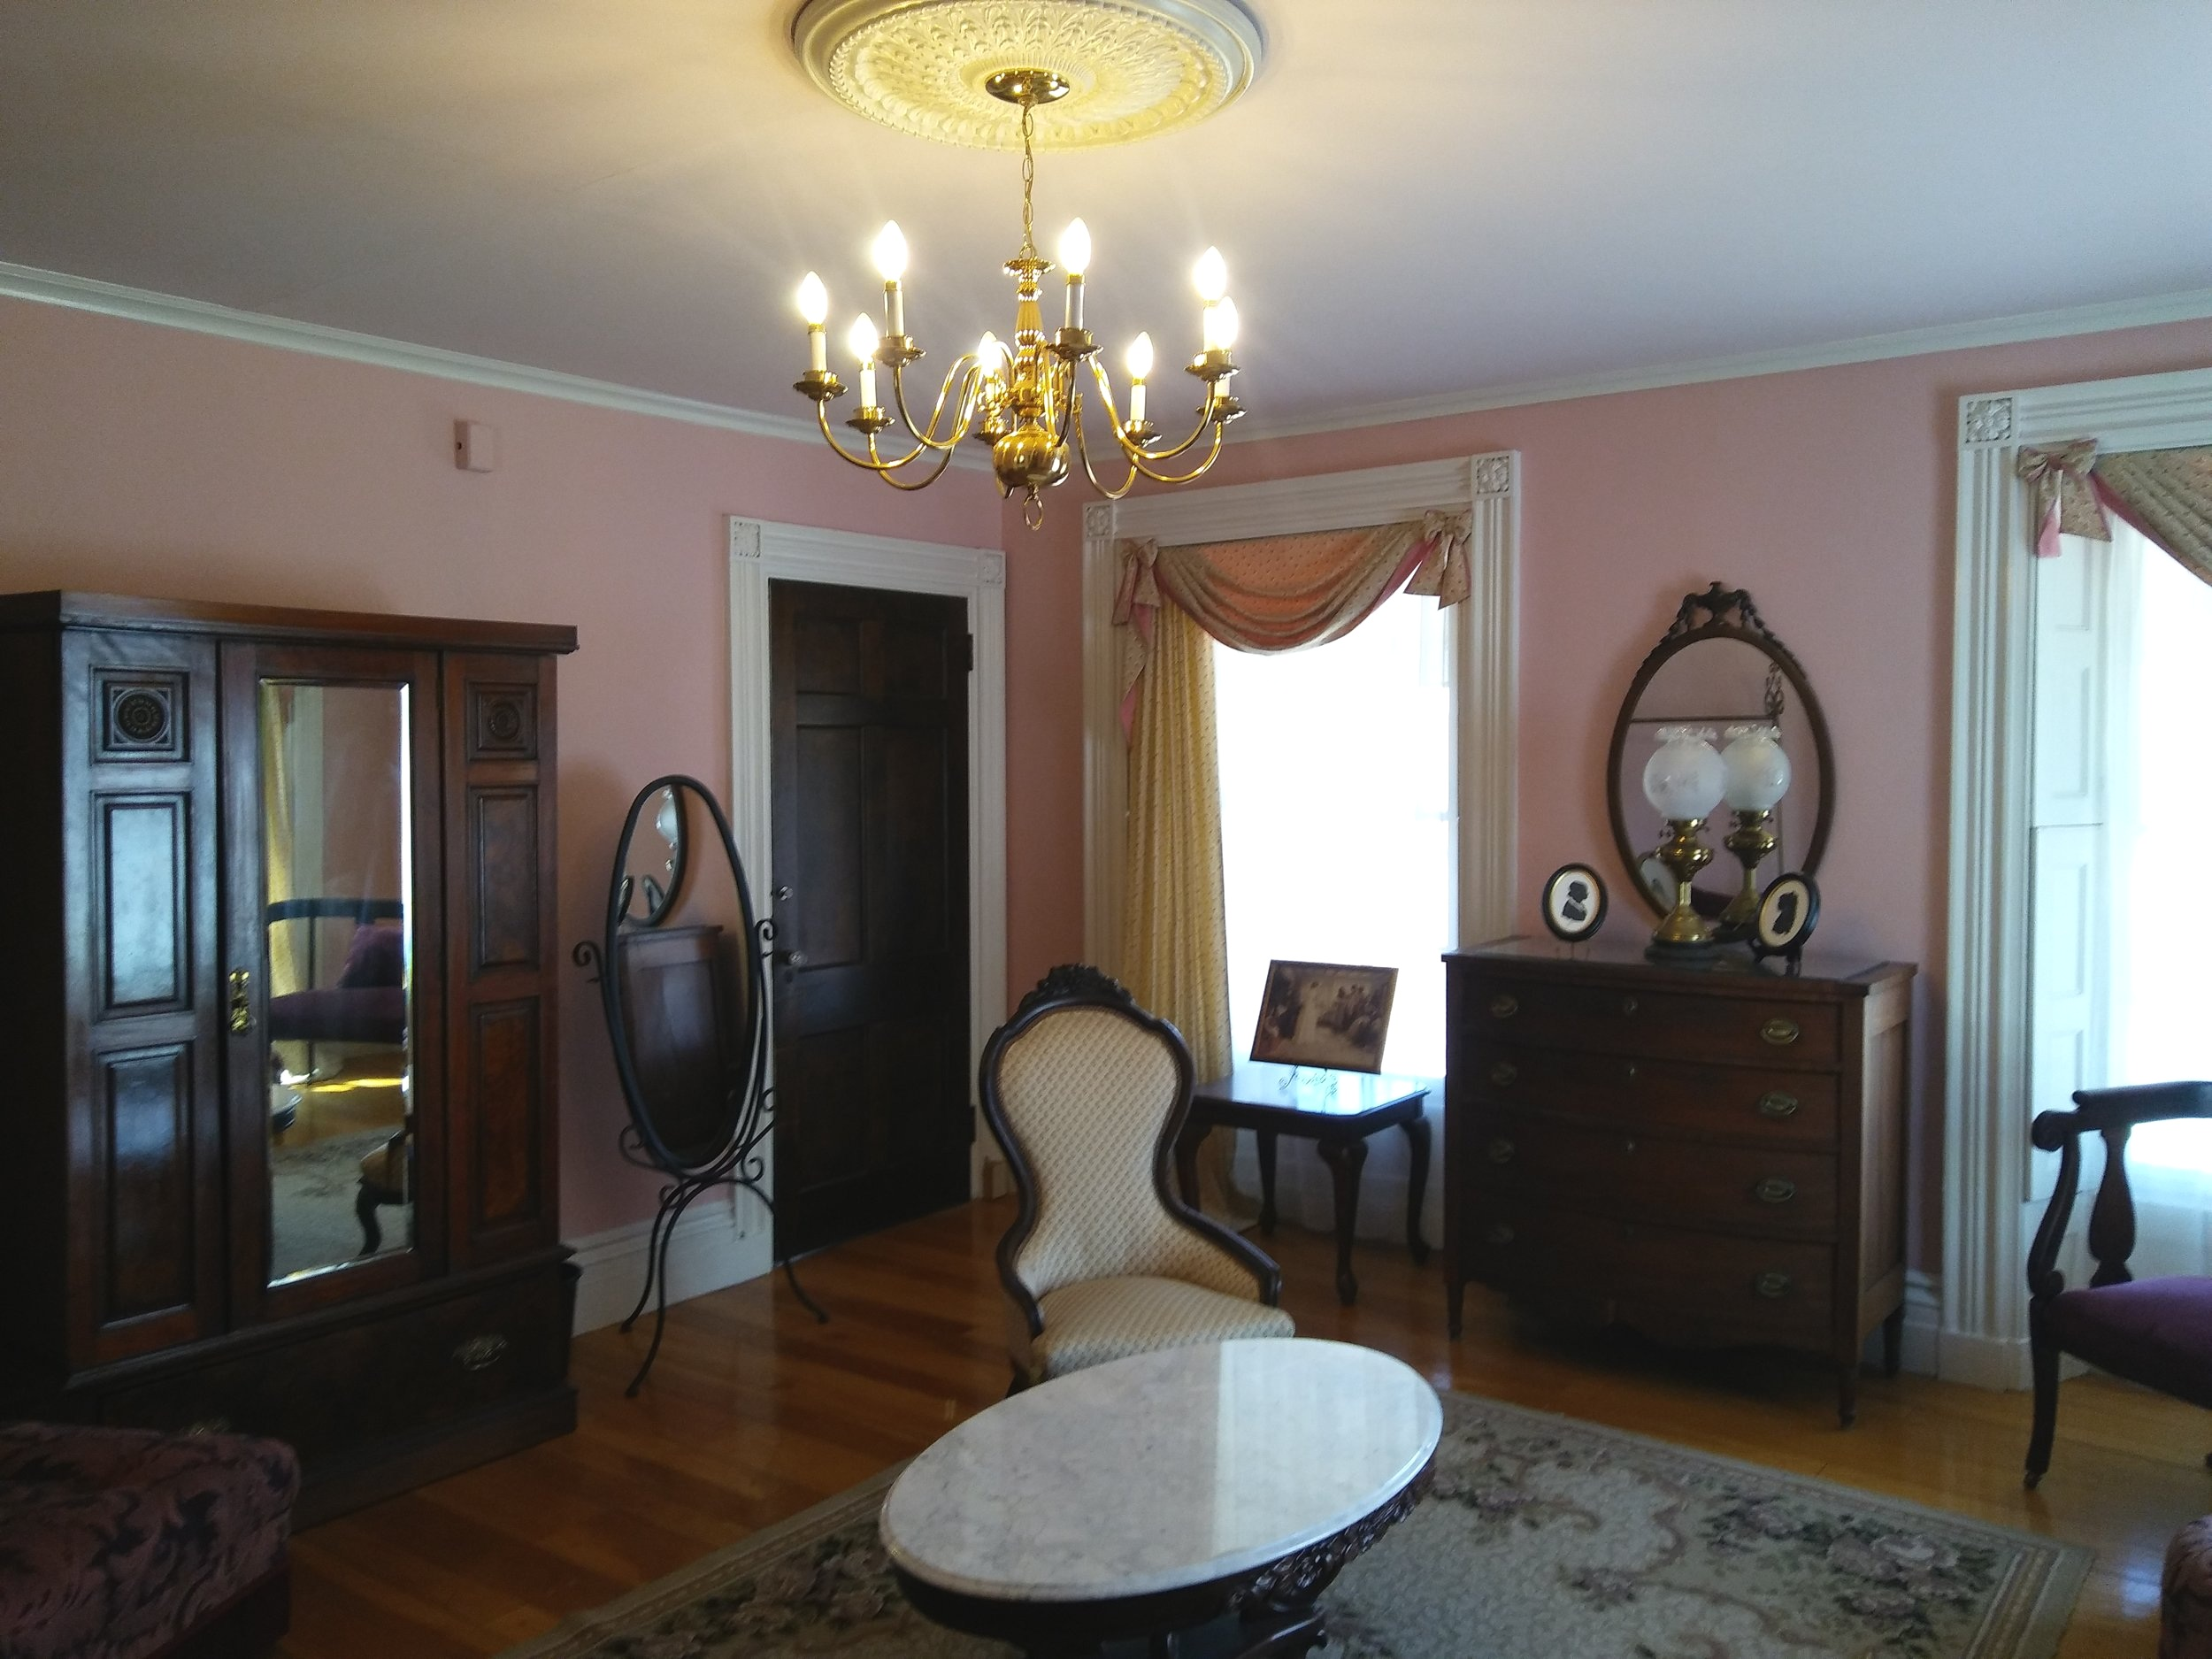 The Bride's Room: originally the bedroom of Susan Holman Waters, our inviting Bride's Room is the perfect place to prep for that special day! Photo: Mary Bowen, Asa Waters Mansion.